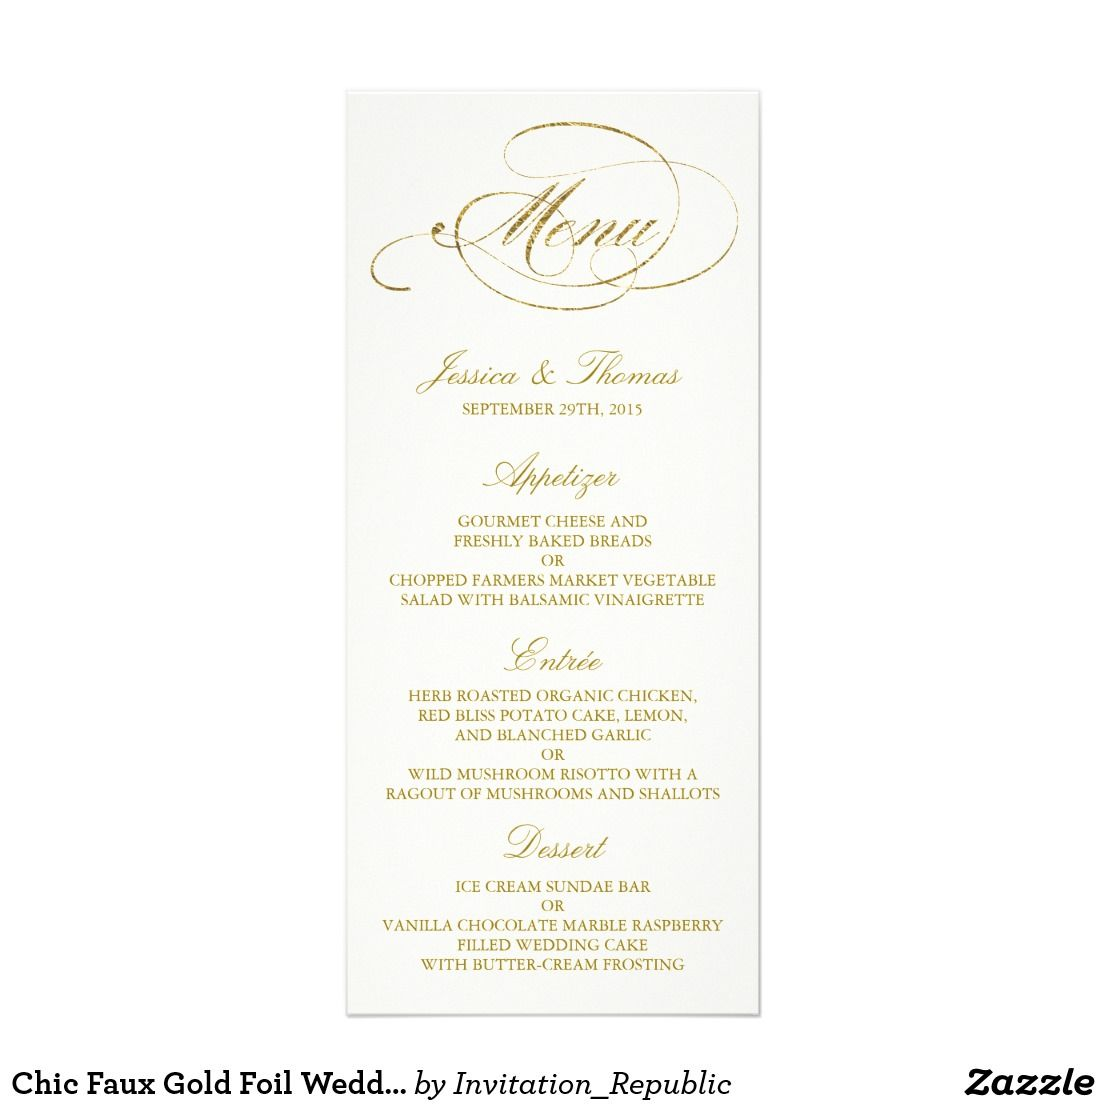 Chic Faux Gold Foil Wedding Menu Template  Ivory  MomS Wedding